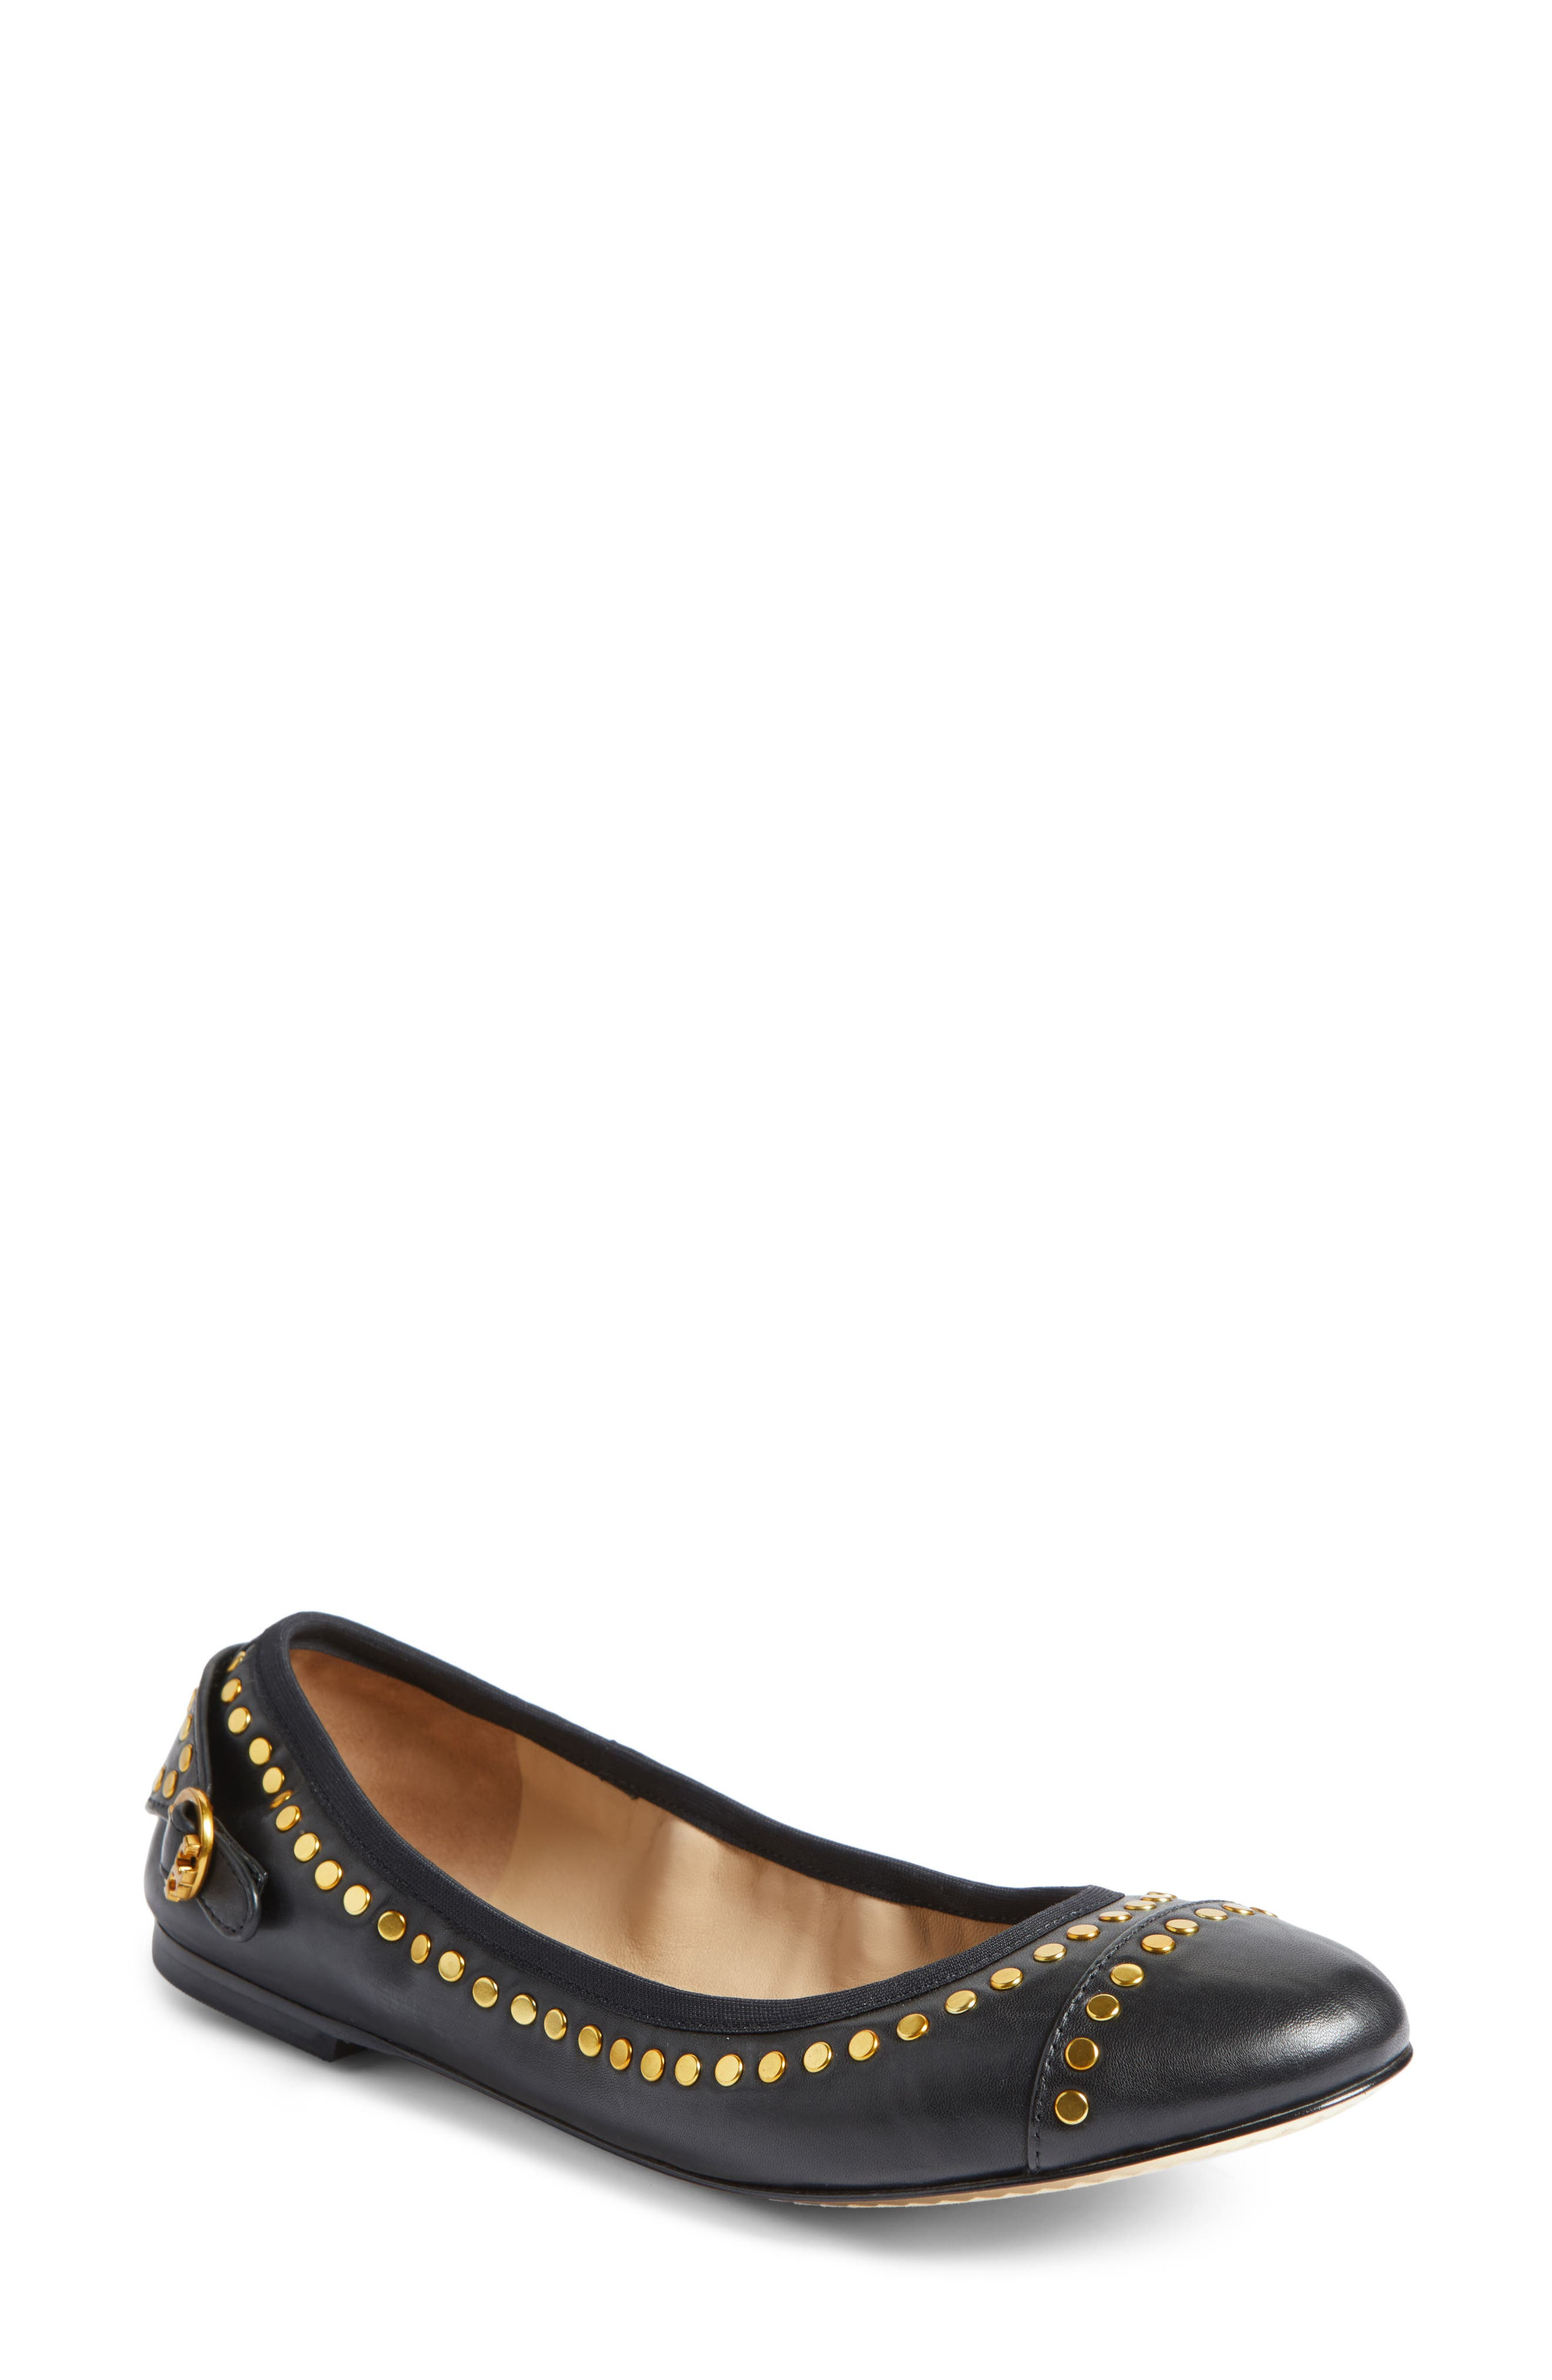 Tory Burch Holden Studded Cap Toe Flat (Women)